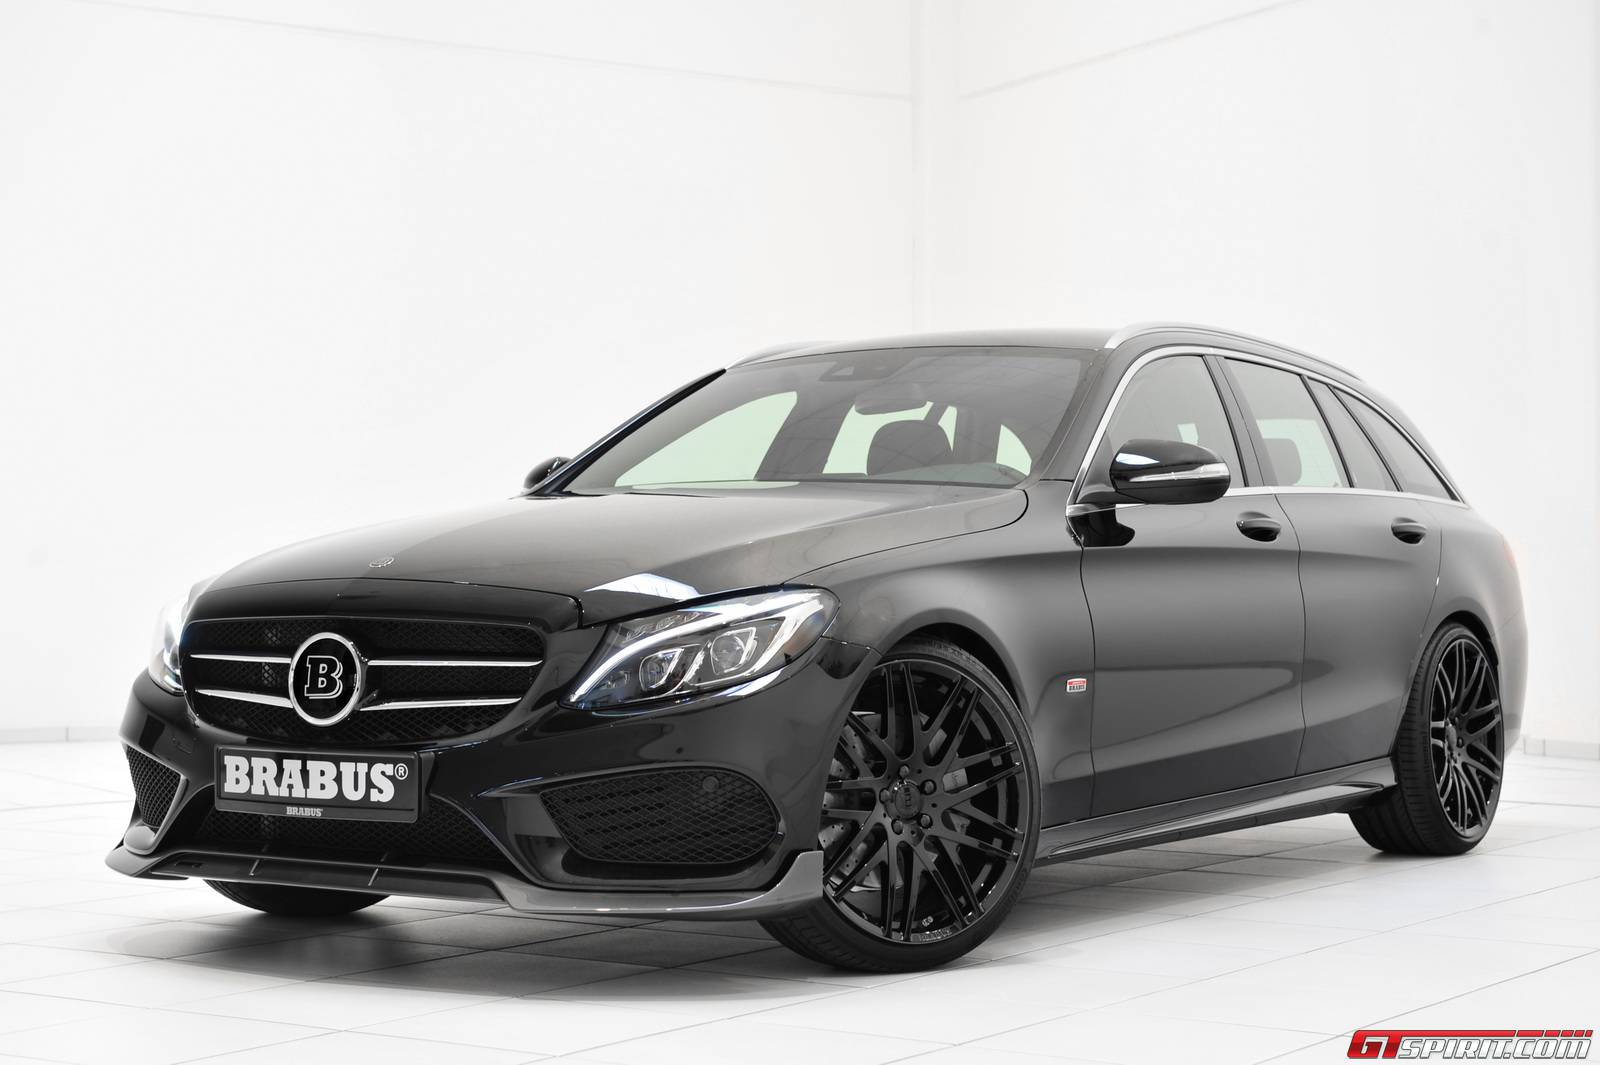 official brabus mercedes benz c class estate gtspirit. Black Bedroom Furniture Sets. Home Design Ideas